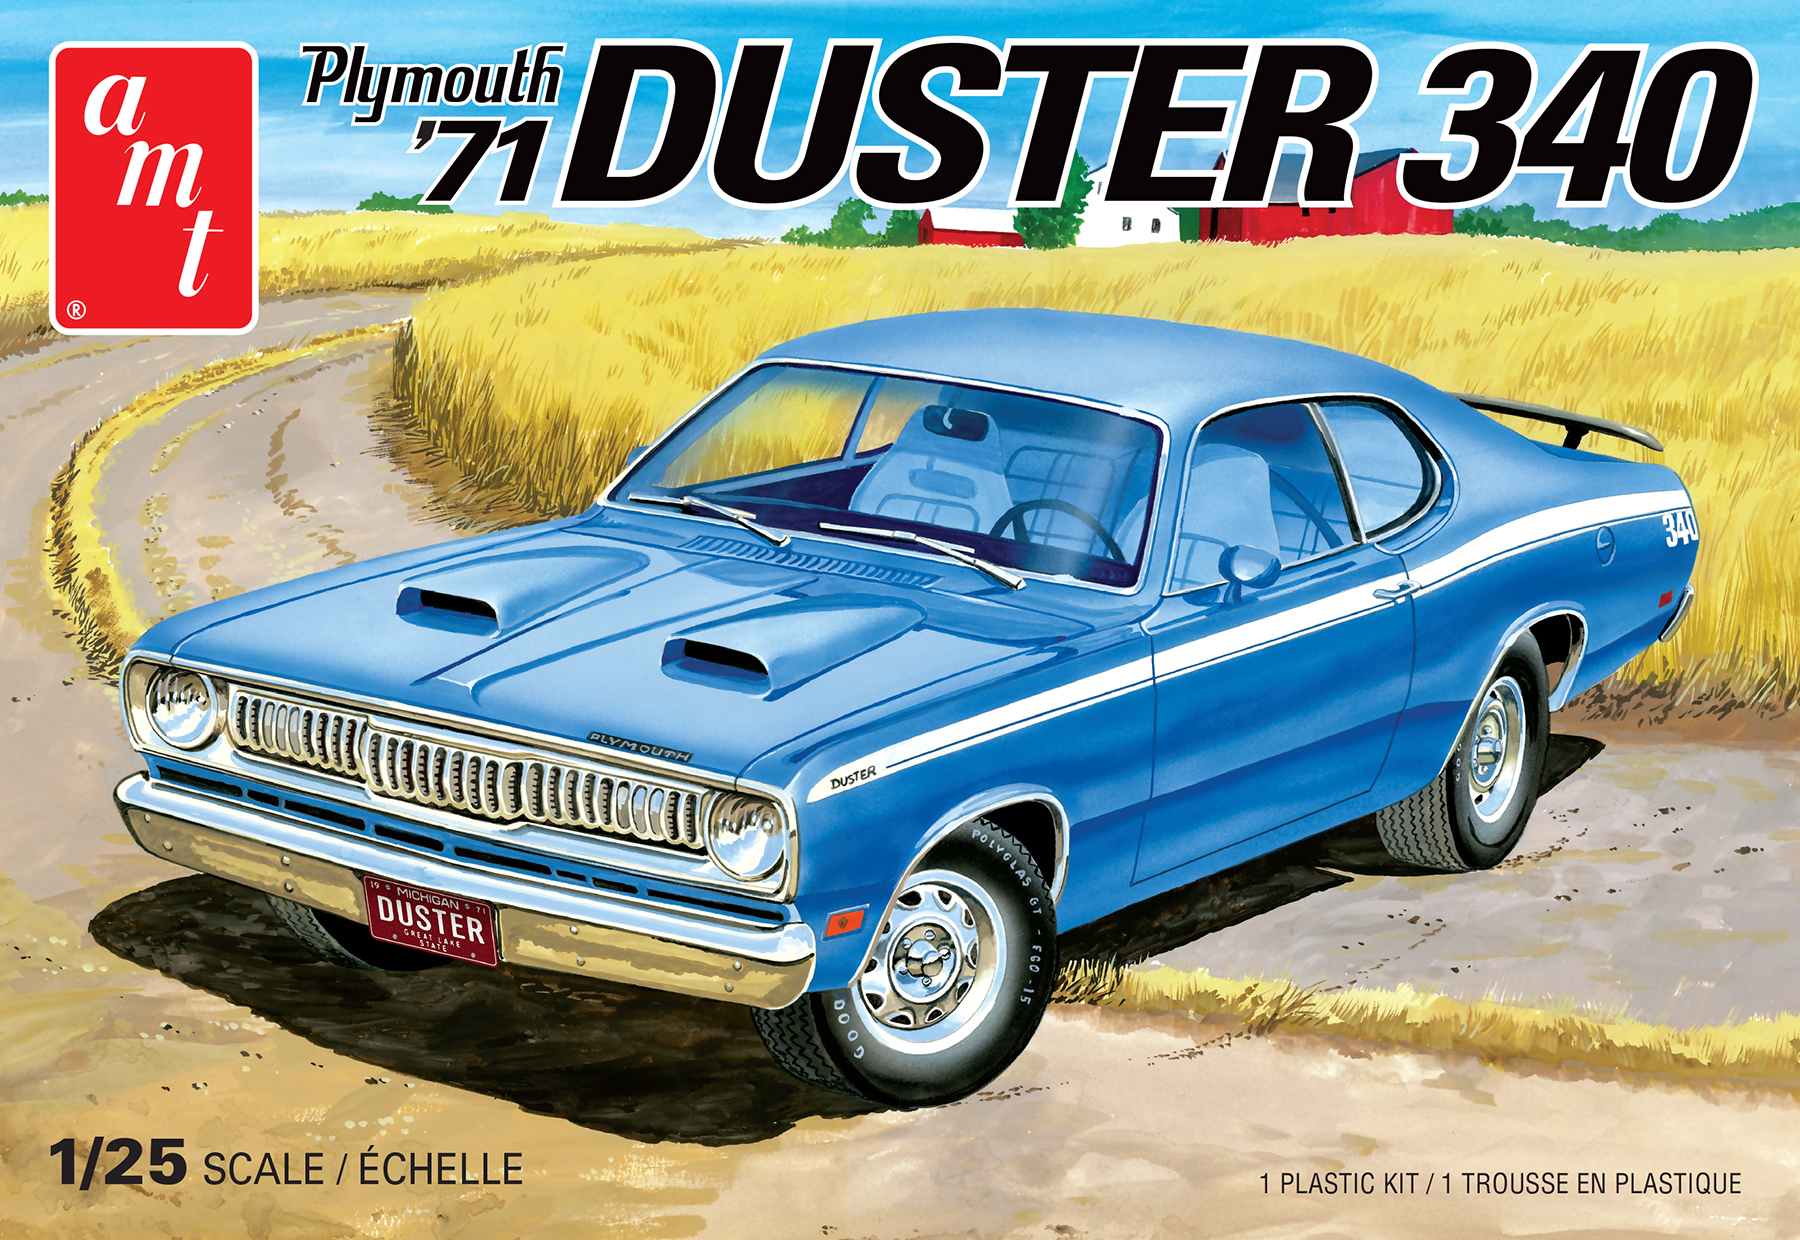 hight resolution of amt1118m1971duster340 thumb jpg afb1a5452403ad60e6bafae62294c7ba jpg